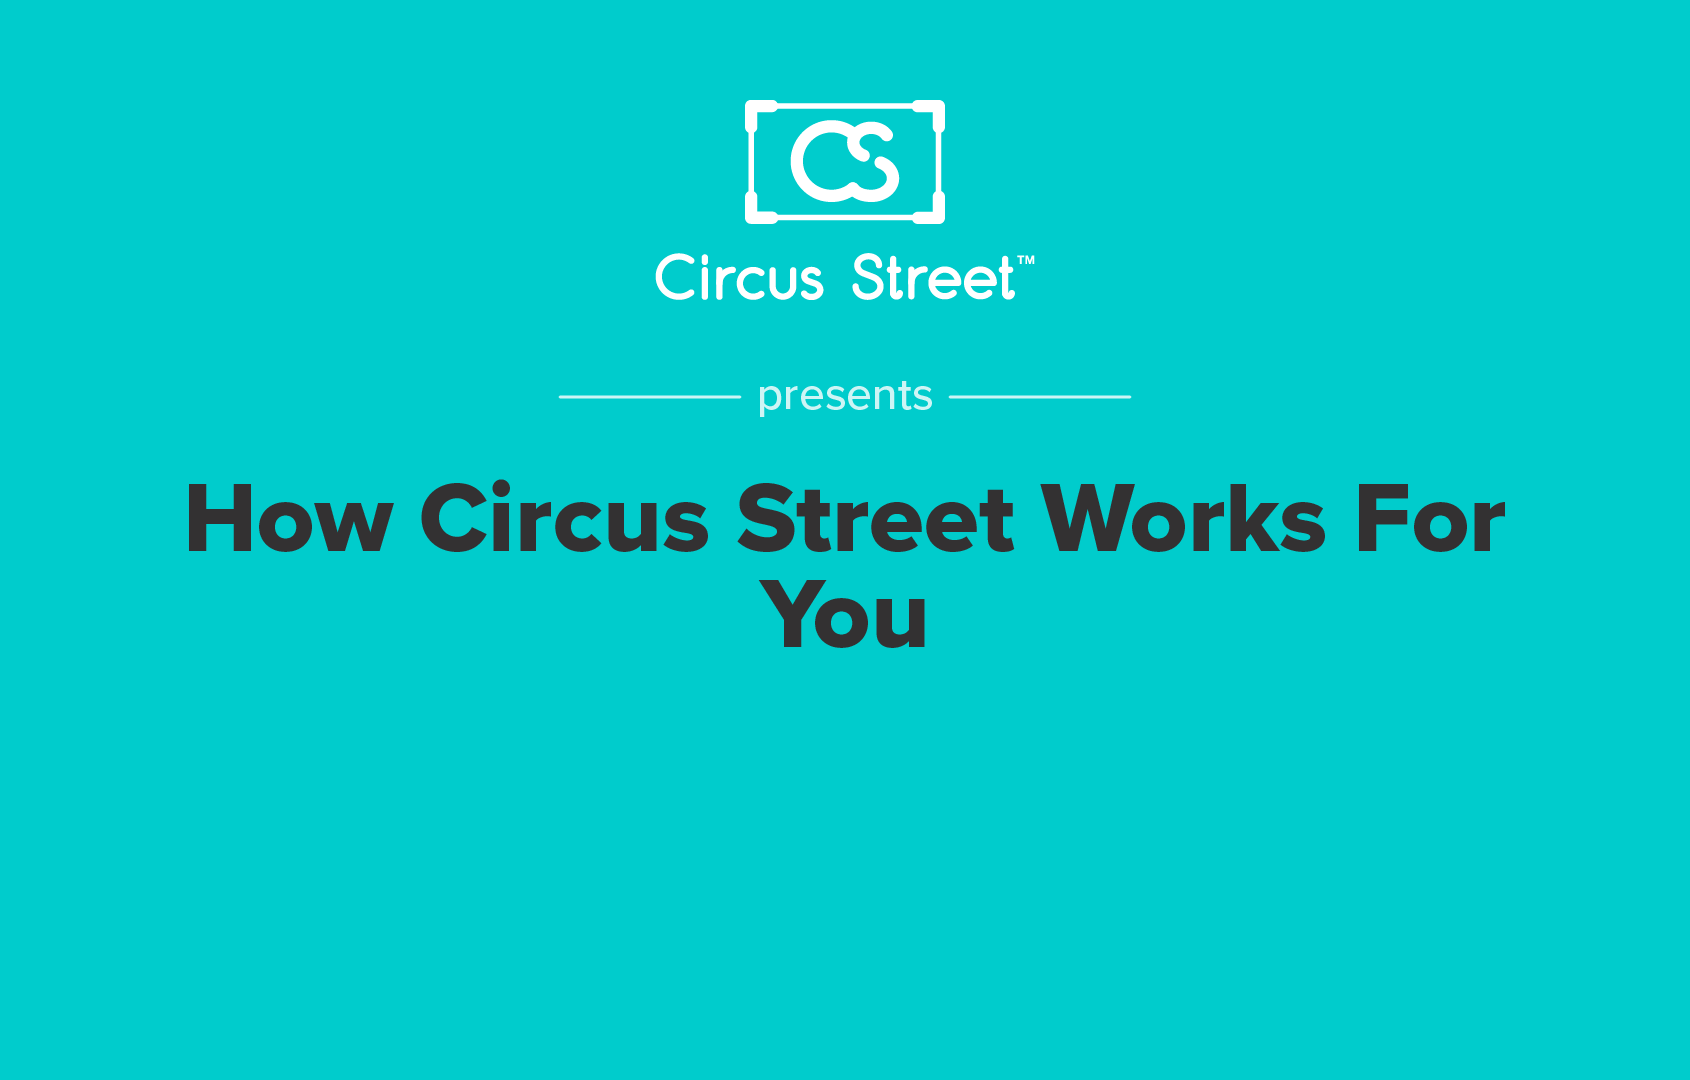 How Circus Street Works for You